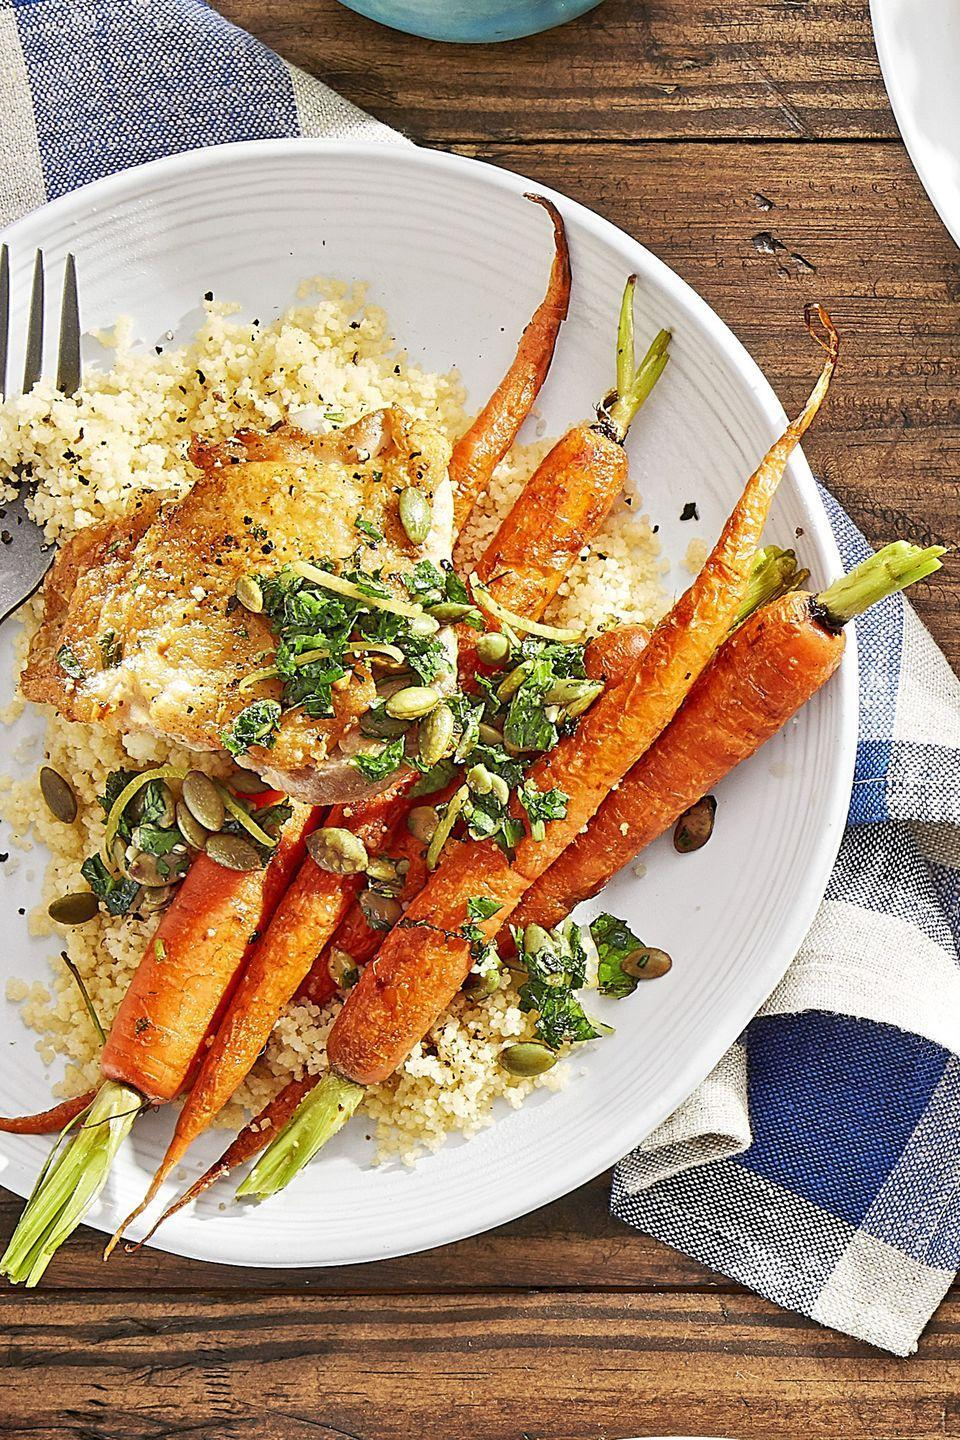 "<p>Who knew that roasting carrots whole could look so pretty? Especially when served with golden chicken thighs and fluffy couscous.</p><p><a href=""https://www.countryliving.com/food-drinks/recipes/a44273/crispy-chicken-roasted-carrots-couscous-recipe/"" rel=""nofollow noopener"" target=""_blank"" data-ylk=""slk:Get the recipe."" class=""link rapid-noclick-resp""><strong>Get the recipe.</strong></a></p>"